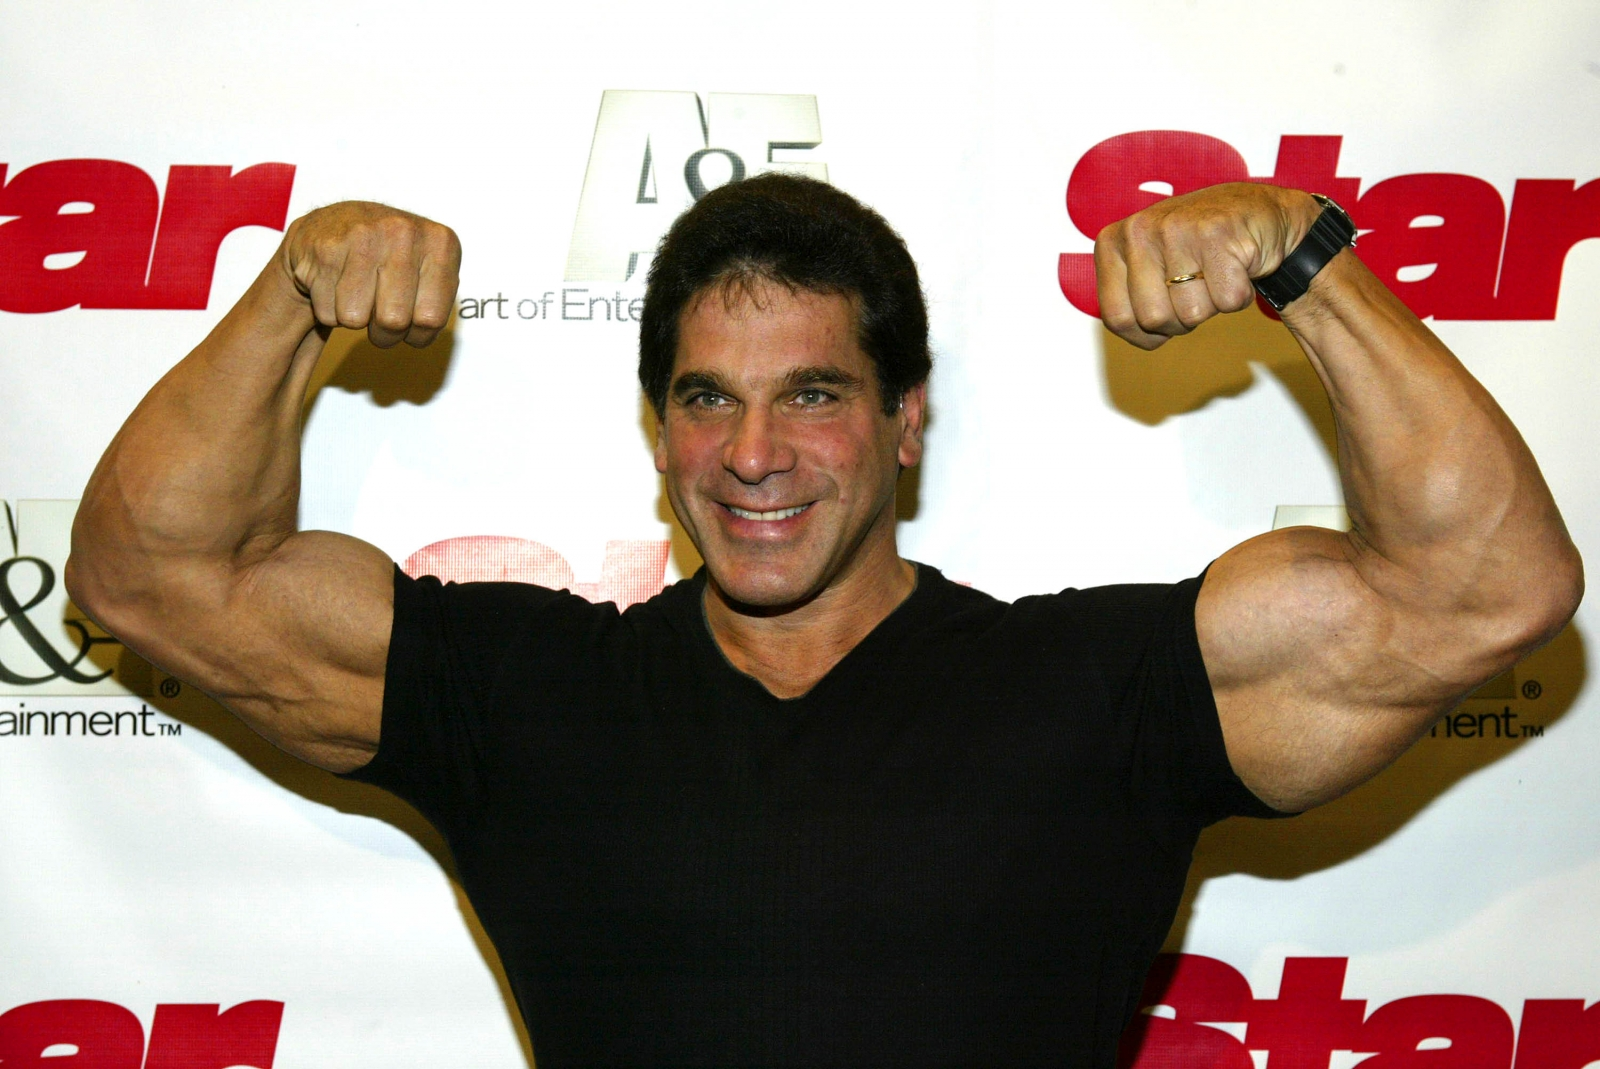 Lou Ferrigno 'Hulk' from The Incredible Hulk